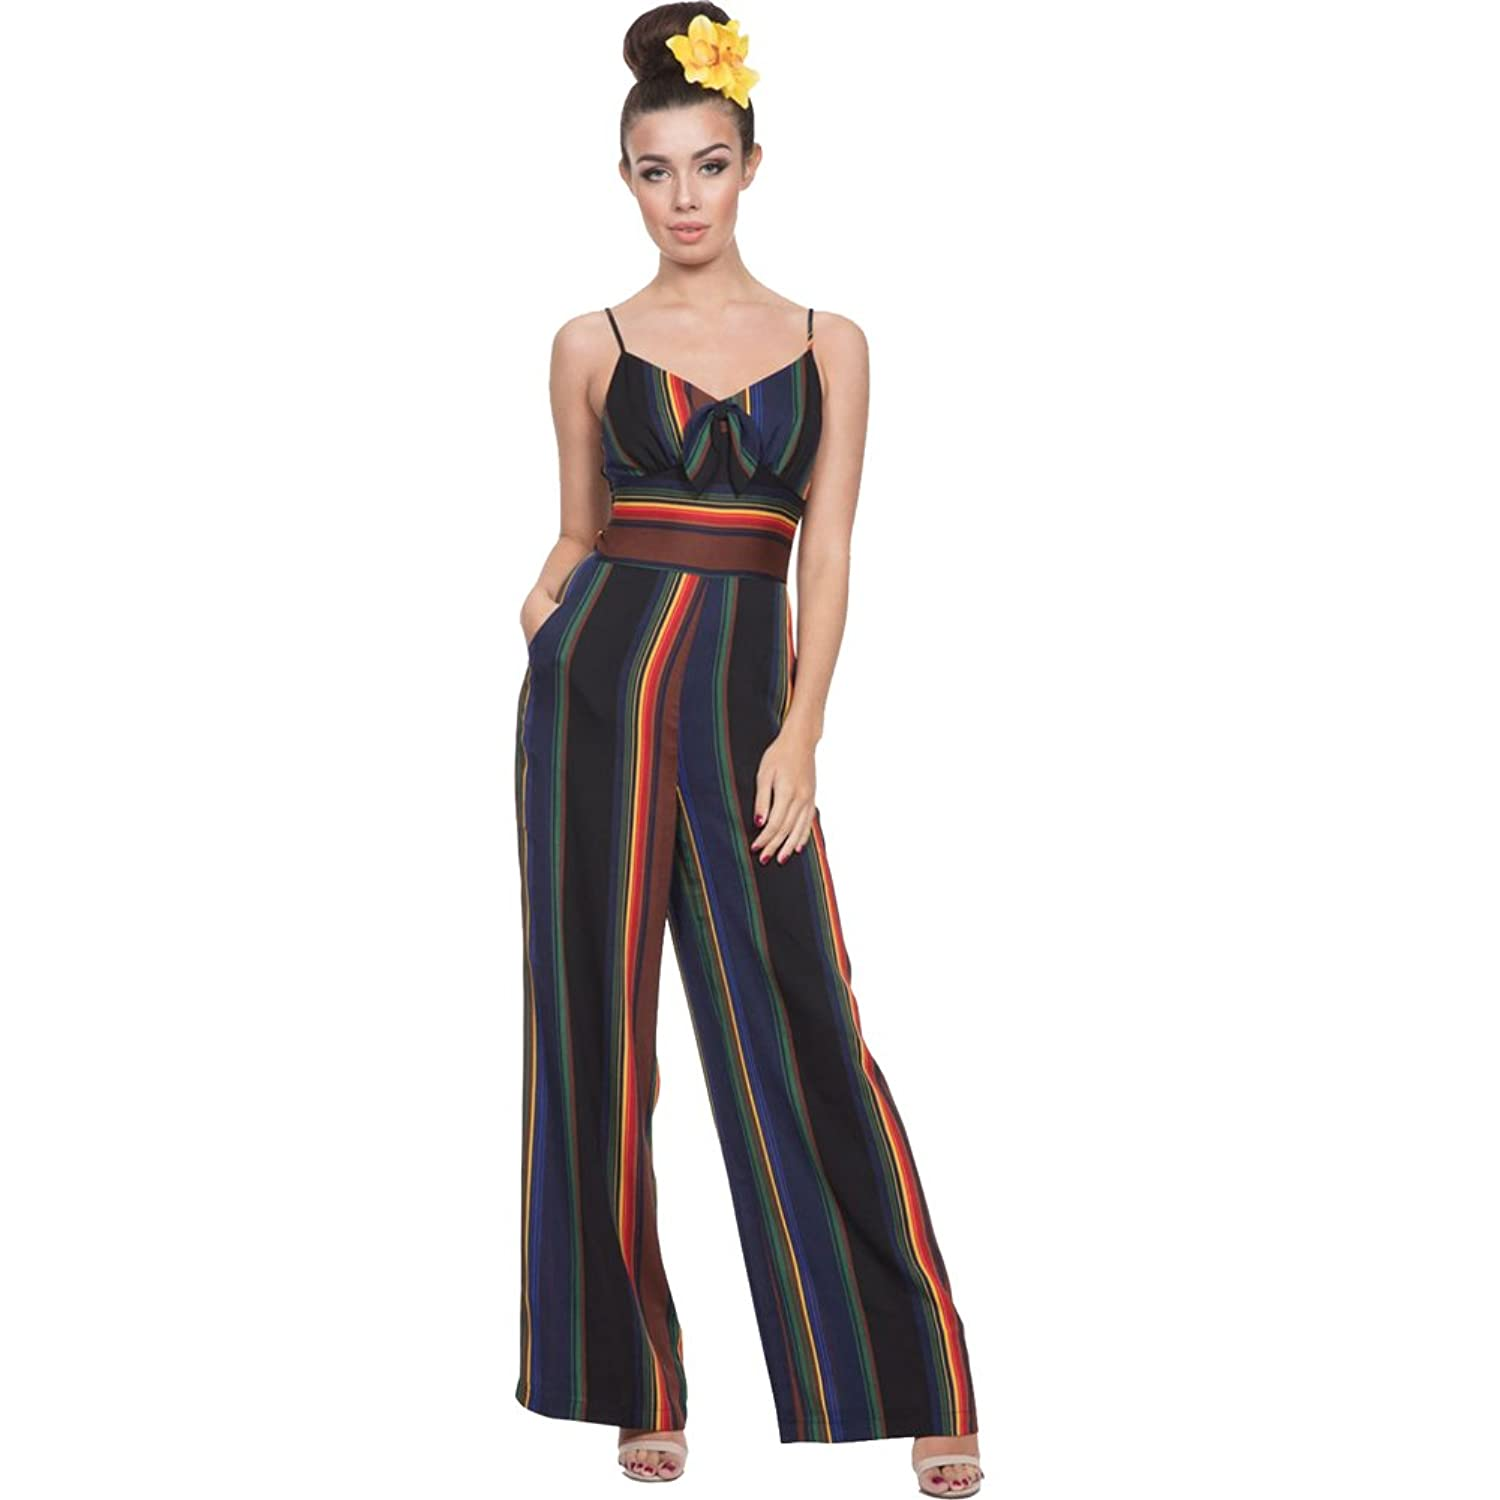 Women's 1960s Style Pants  VIVIAN Rainbow Jumpsuit Black $67.99 AT vintagedancer.com